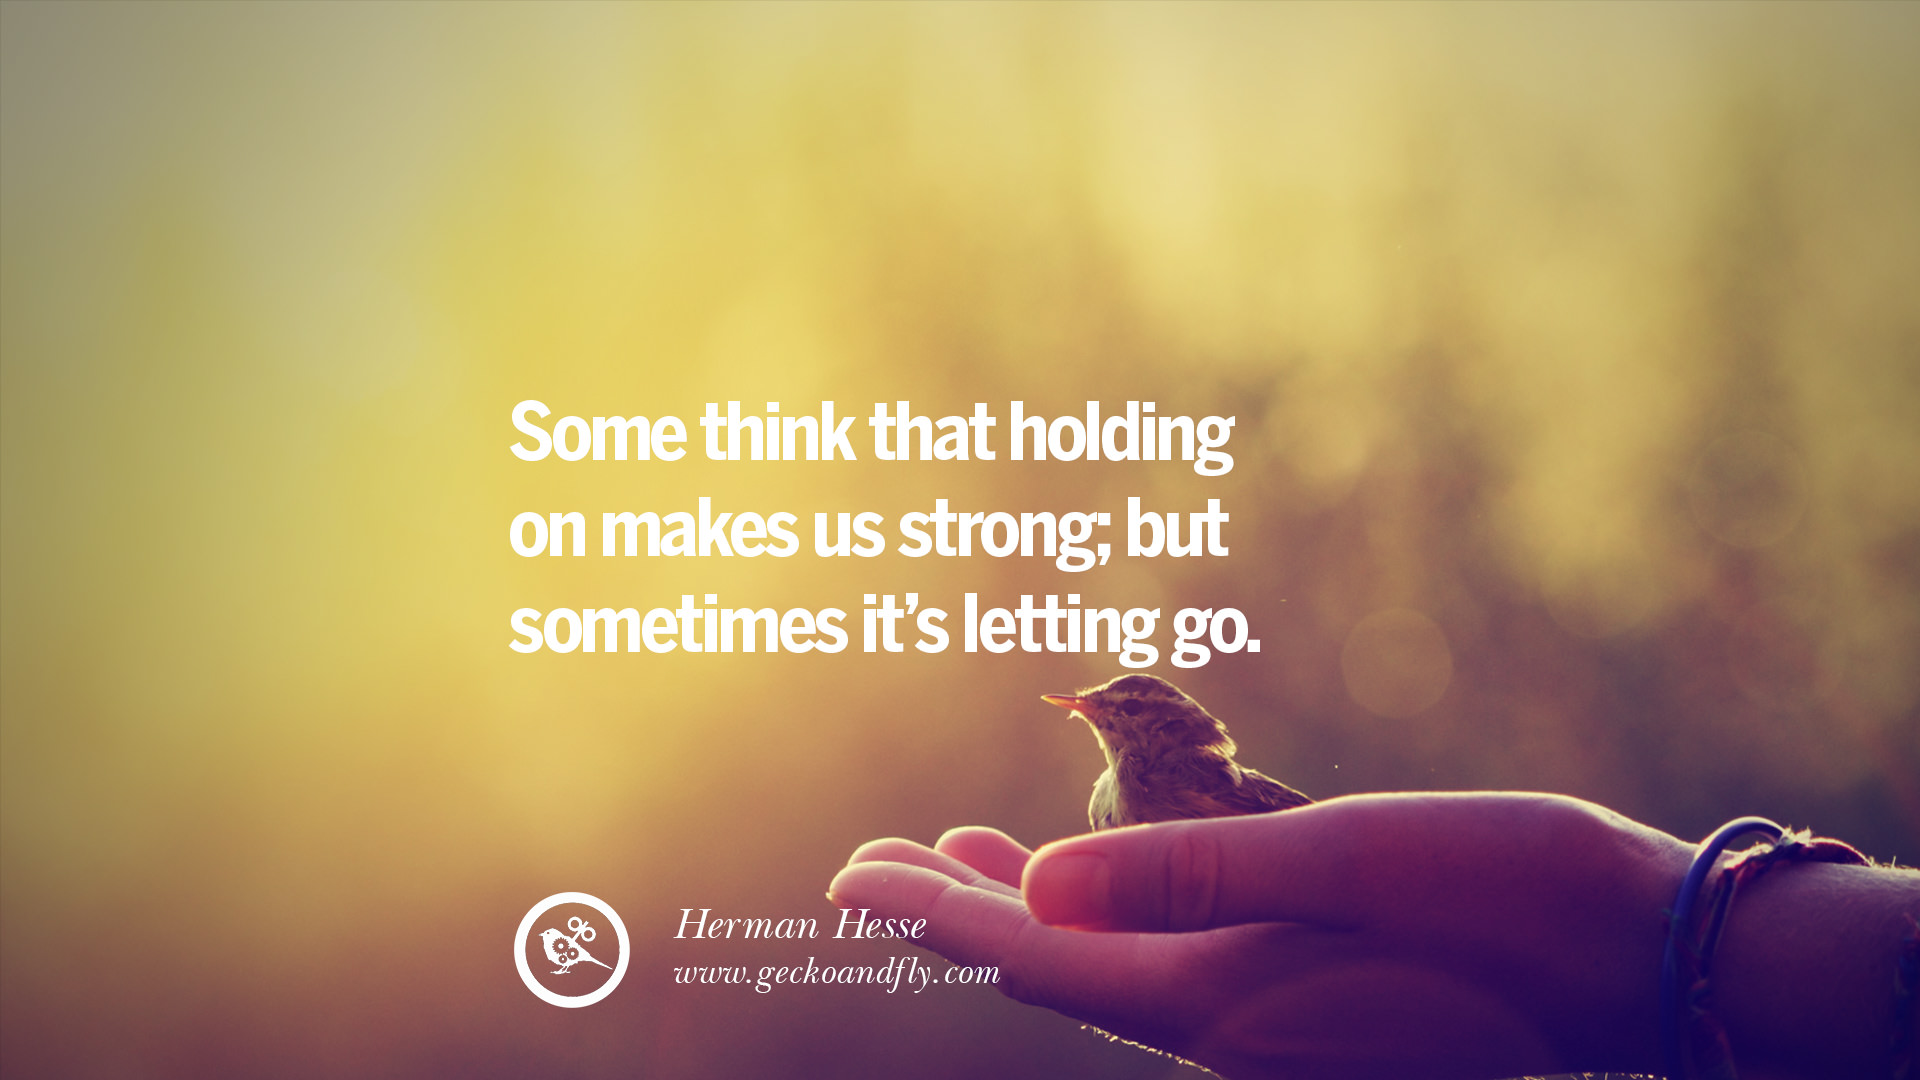 Broken Love Wallpaper With Quotes 50 Quotes About Moving On And Letting Go Of Relationship